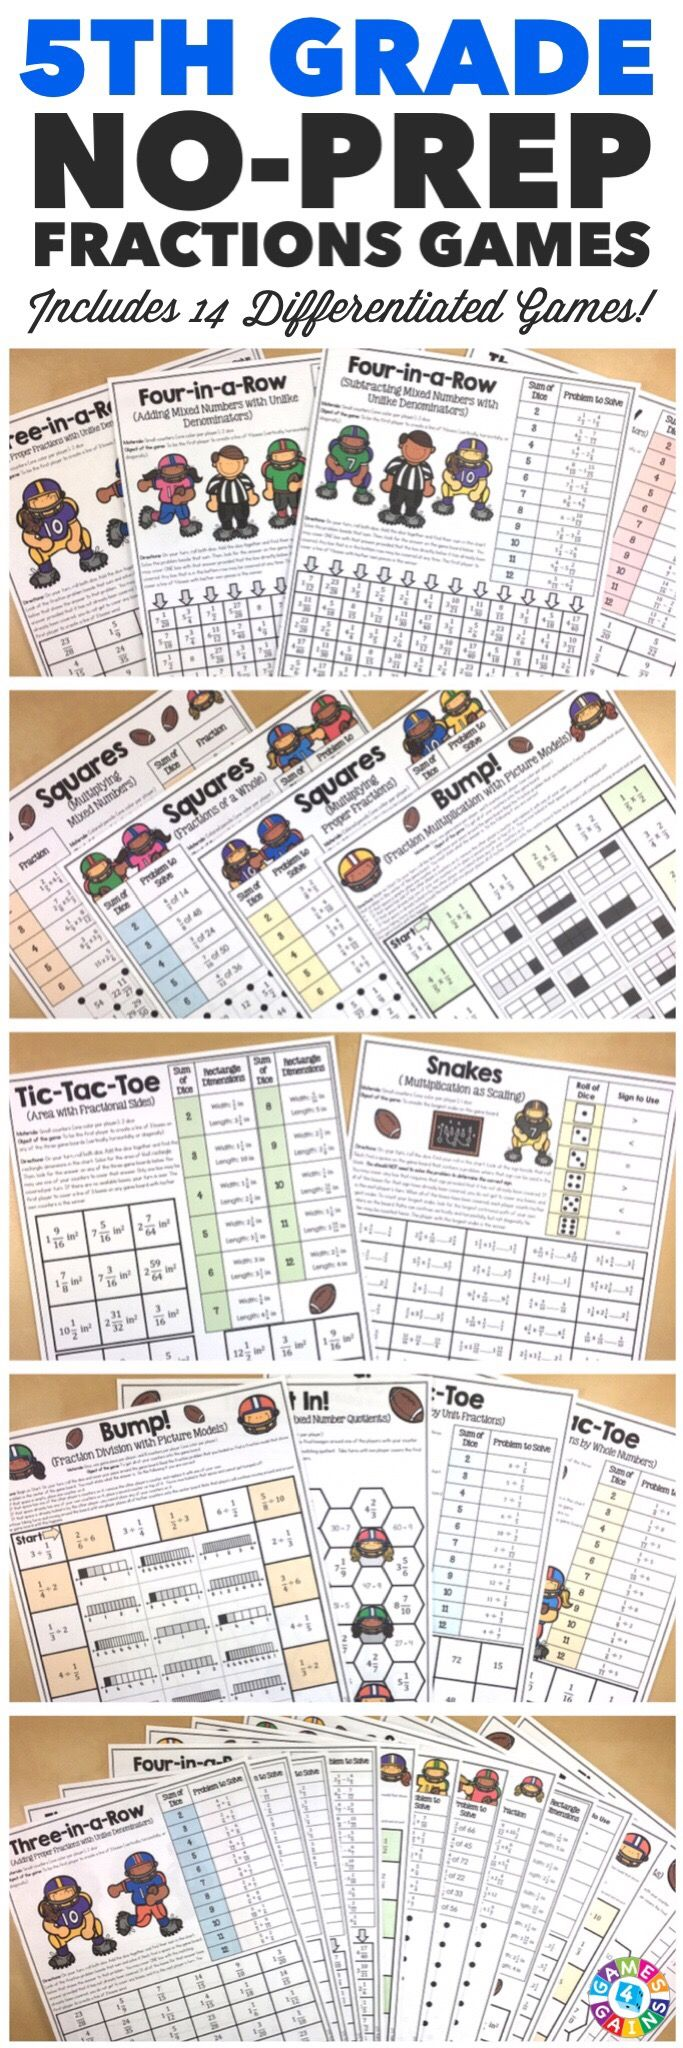 """""""I LOVE that these games include different skill levels for fractions and the kids LOVE them too!"""" This 5th Grade Fractions Games Pack includes 14 differentiated games for practicing adding fractions, subtracting fractions, multiplying fractions, dividing fractions, simplifying fractions, and calculating area with fractions.  These games support all of the 5th grade CCSS fraction standards!"""